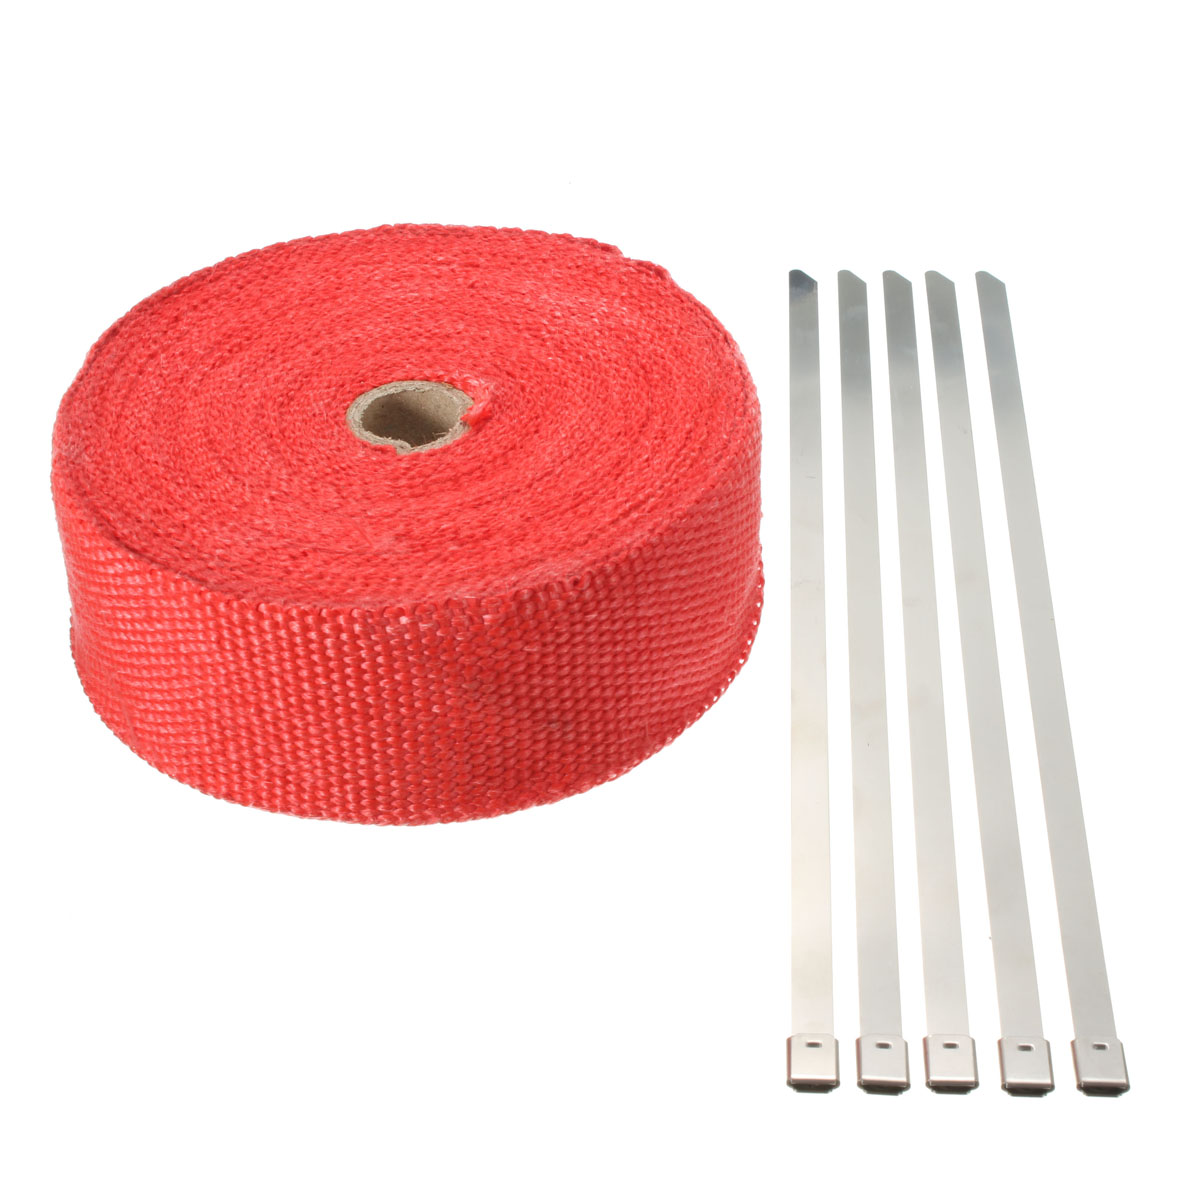 15M Red Exhaust Header Manifold Pipe Insulating Wrap He